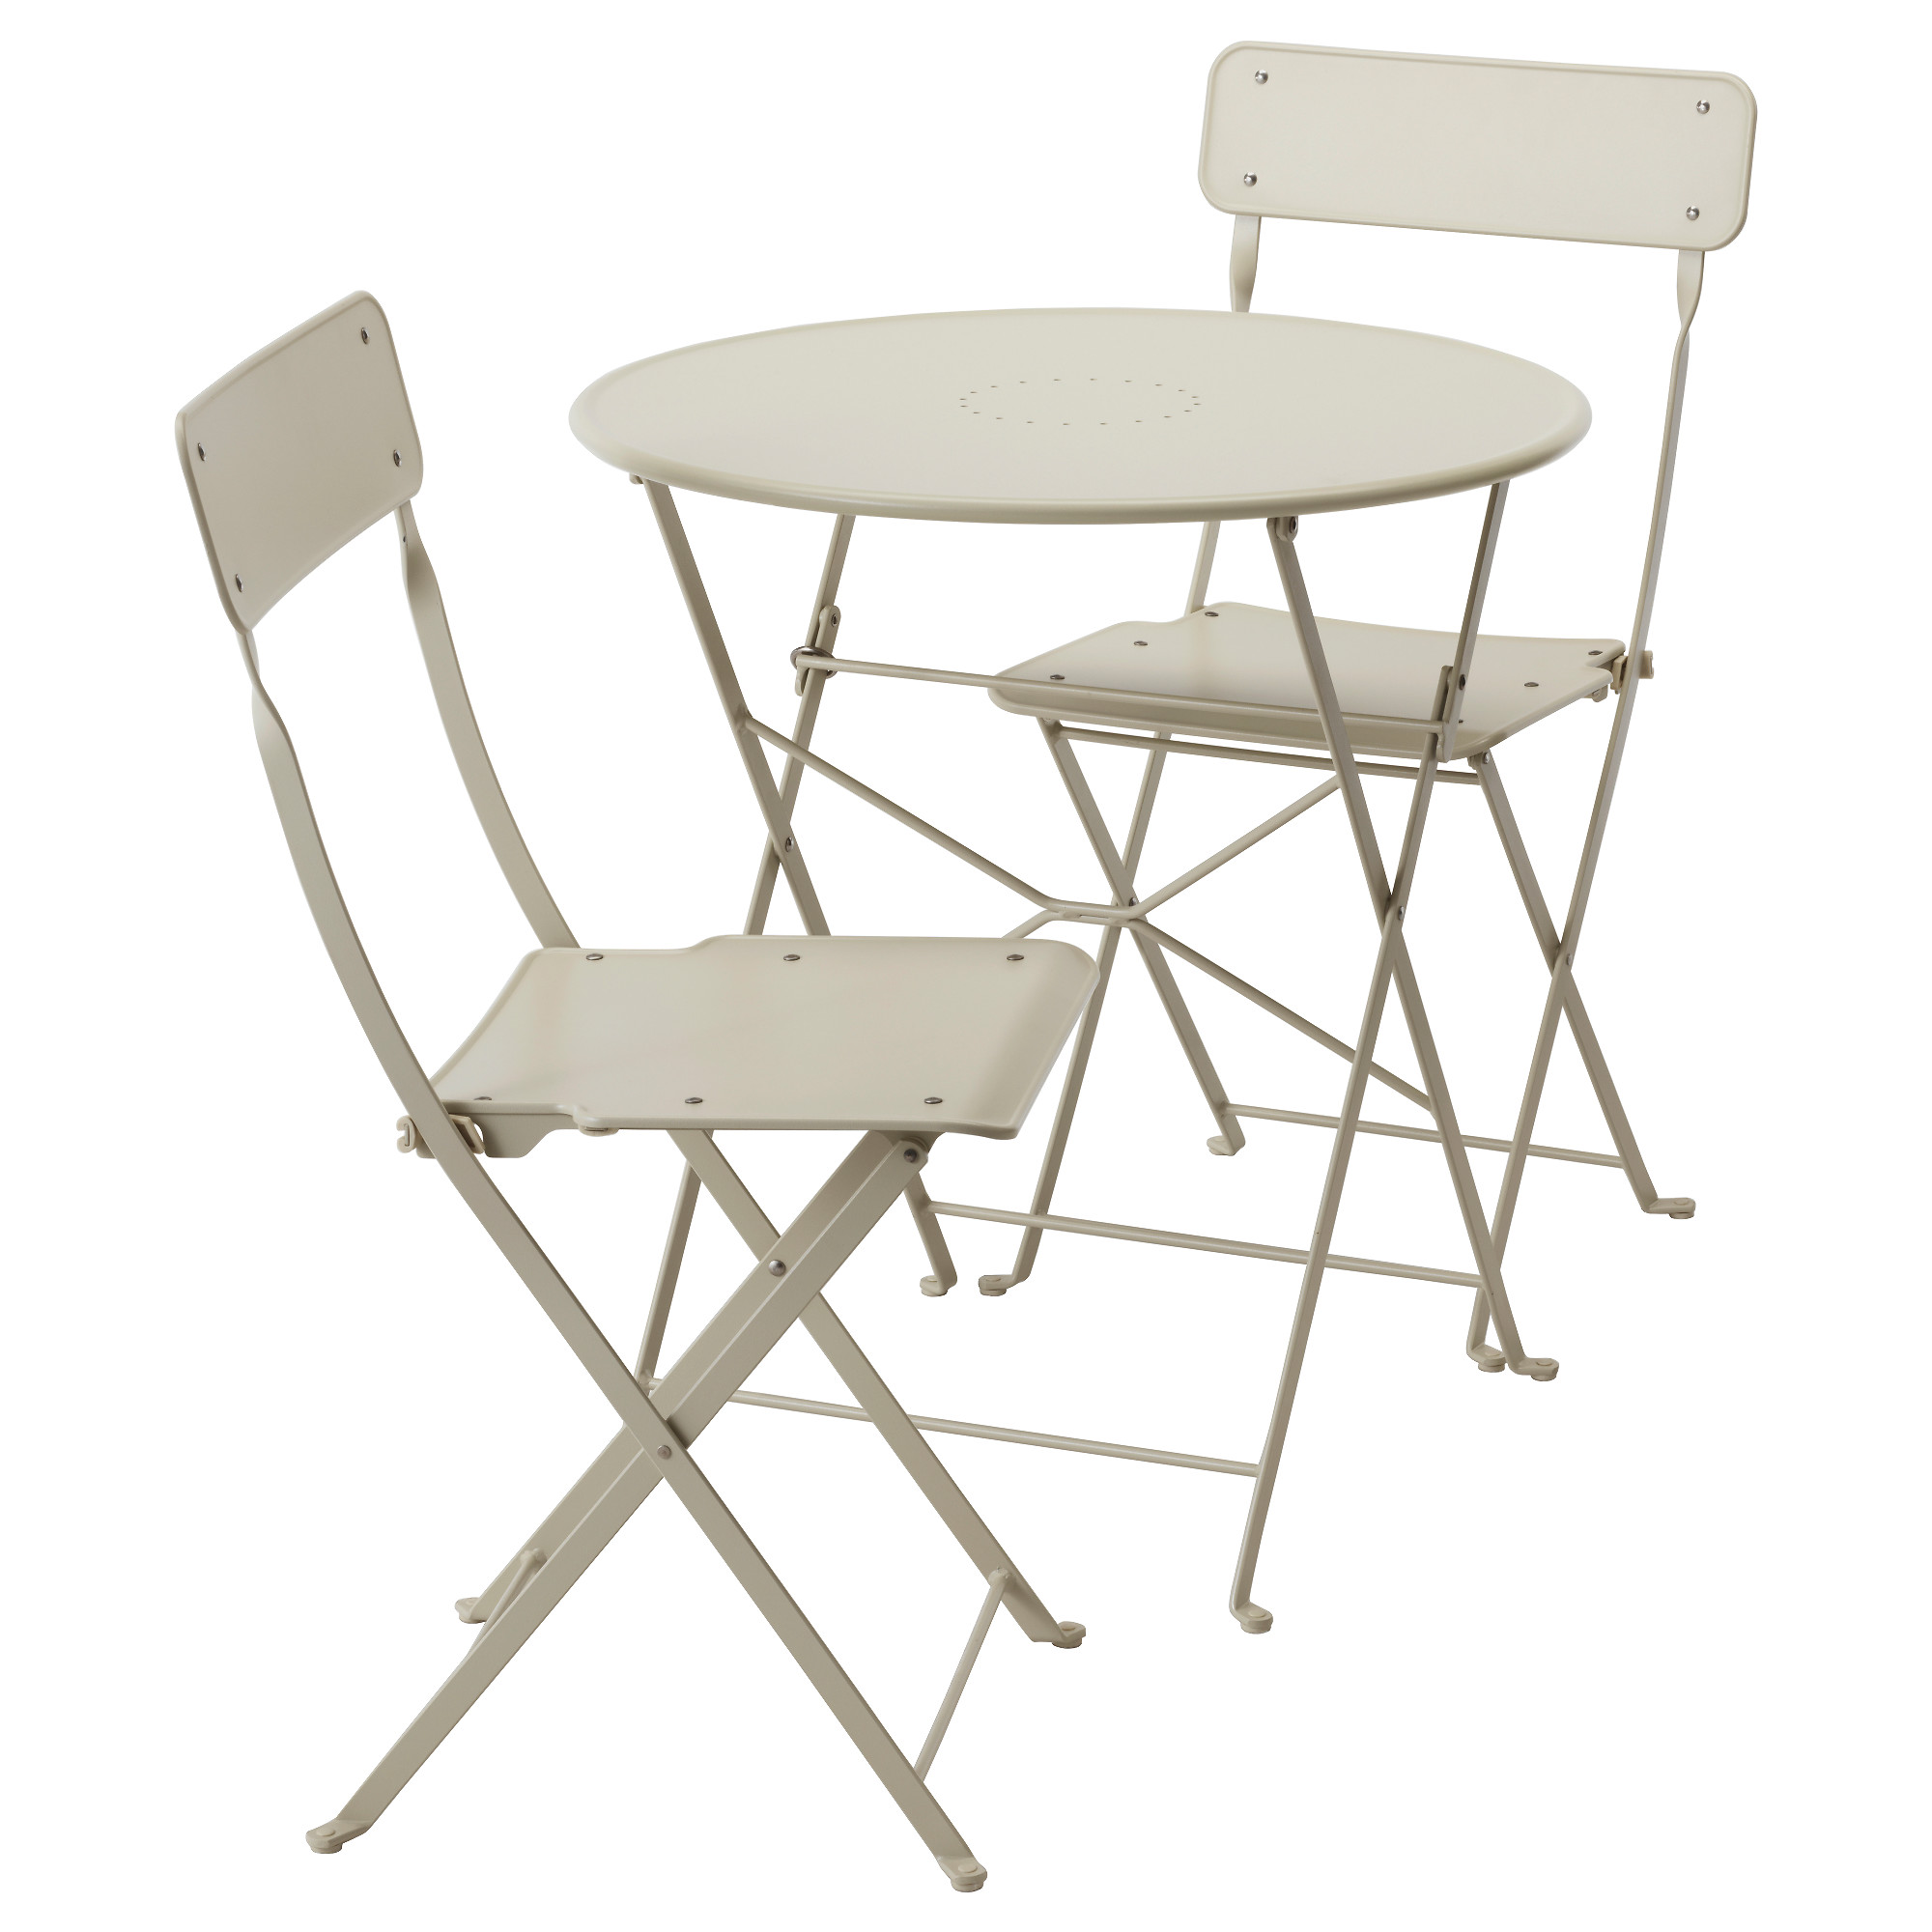 Beautiful folding chairs and tables saltholmen table and 2 folding chairs, outdoor, beige mcvhyrw